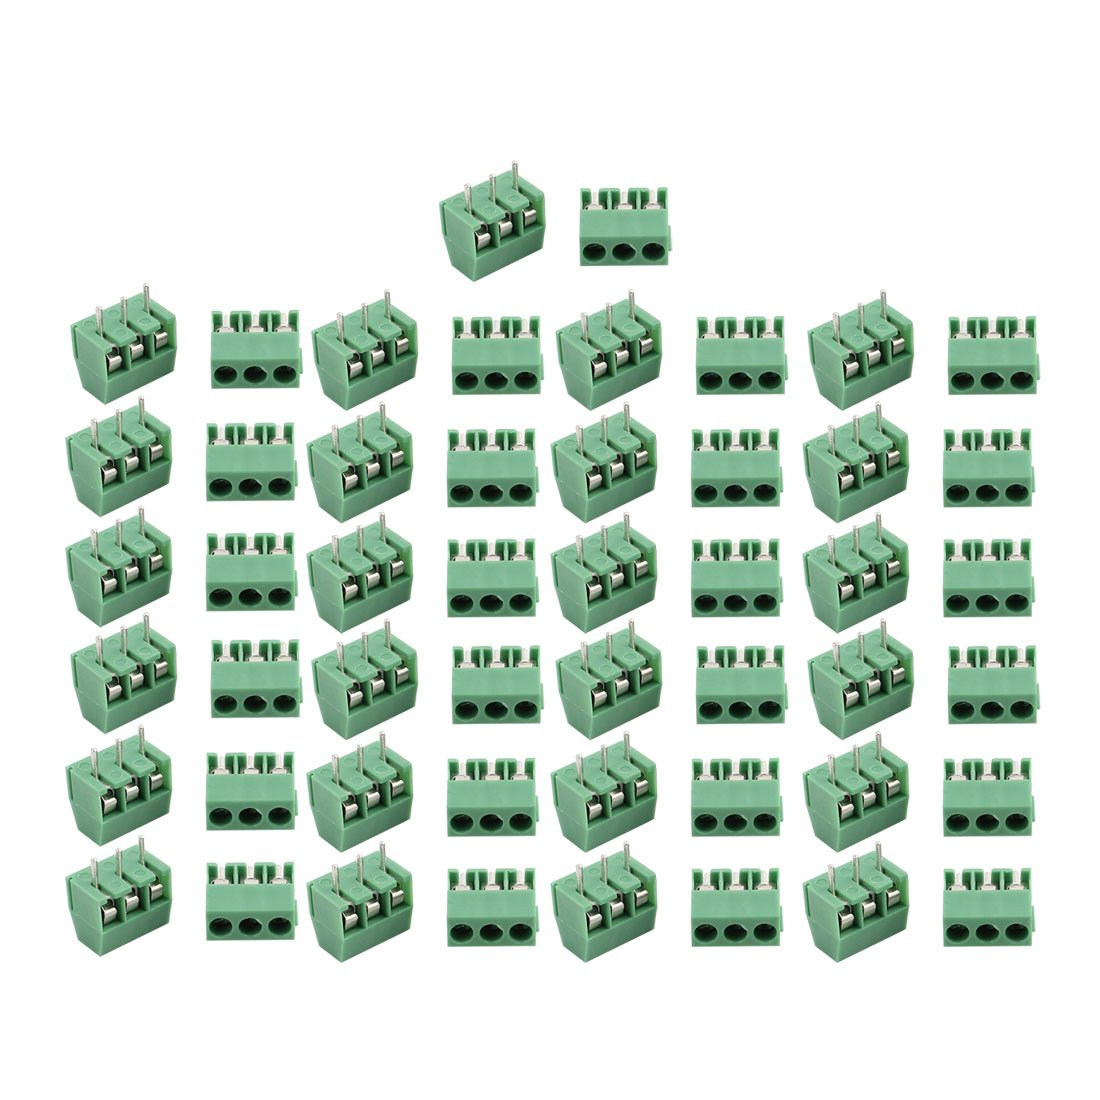 uxcell 50Pcs AC300V 10A 3P 3.5mm Pitch Screw Type PCB Terminal Blocks Connector Green